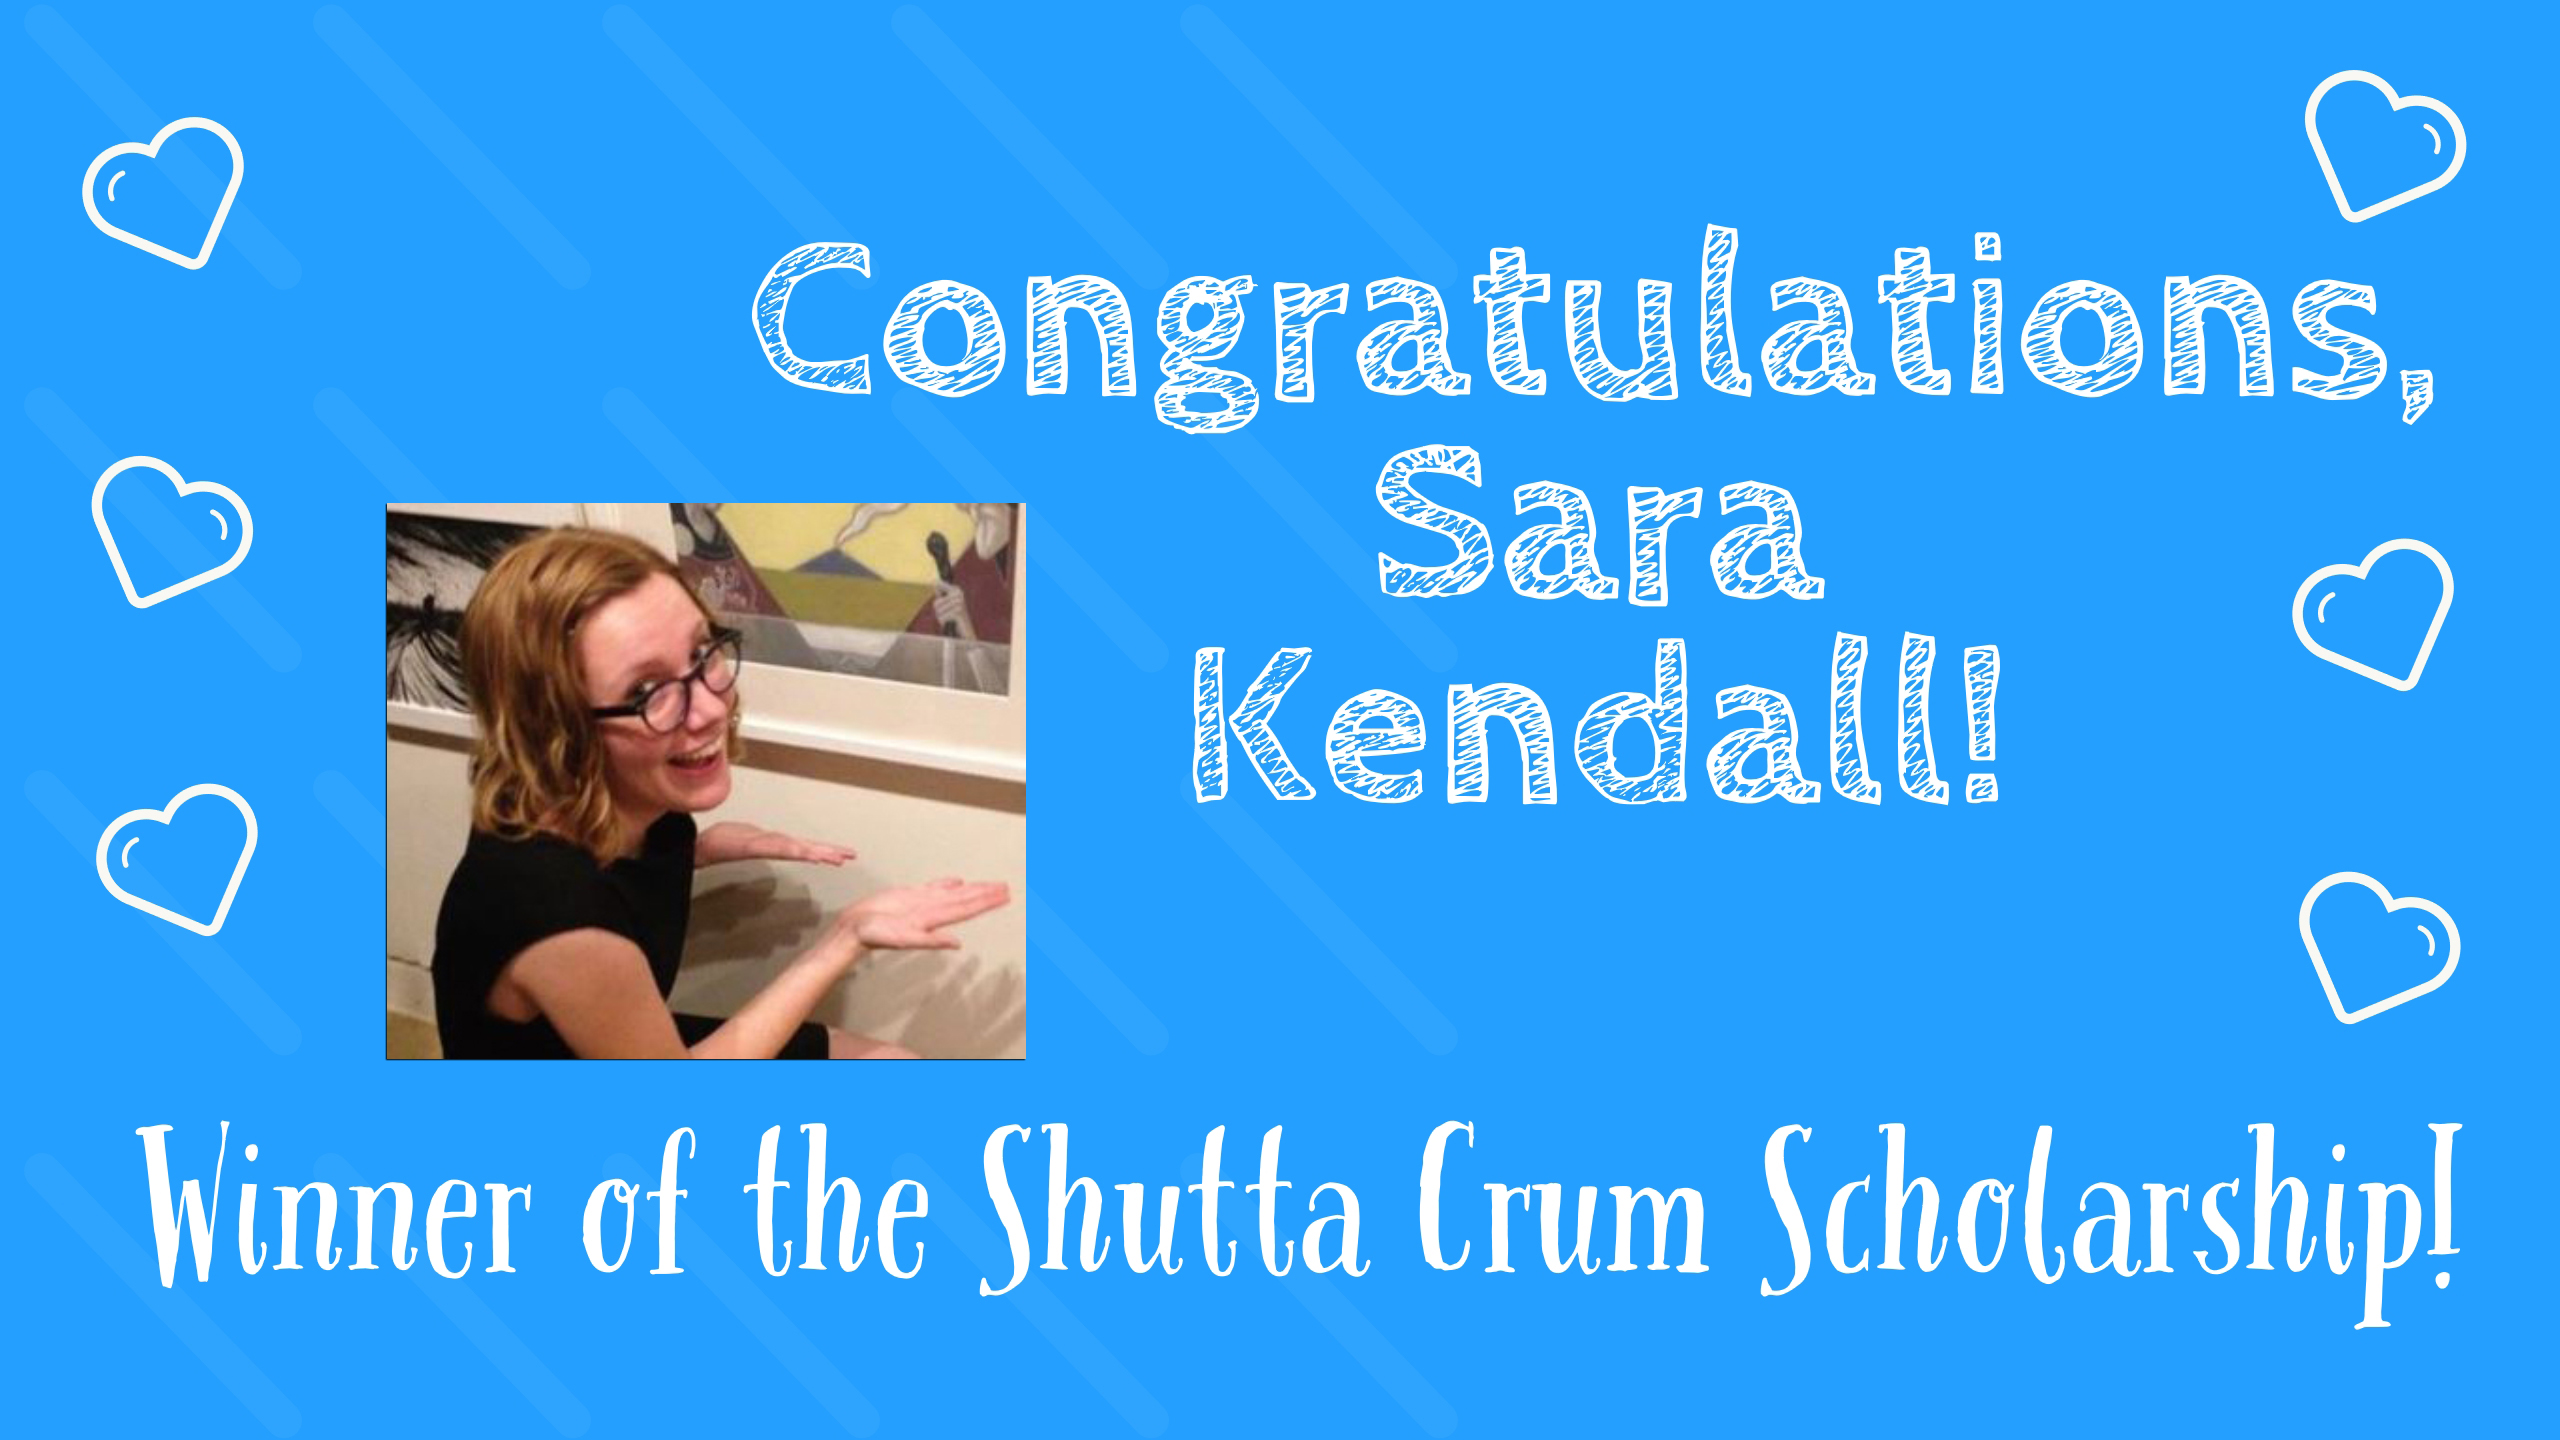 The SCBWI-MI chapter extends HUGE congratulations to illustrator Sara Kendall for winning the highly coveted Shutta Crum Scholarship, granting her the privilege of attending the big LAconferencein July 2020! Individuals who have been SCBWI-MI members for three years or more and have not attended the international SCBWI conference are eligible. Recently, Sara shared her incredible talent with our community as the illustrator who created the lovely logo for our Pokagon retreat, as featured below. Find out more about our talented winner by accessing her website athttp://www.sarakendall.net/ And, thank you, once again, Shutta, for making another deserving SCBWI-MI member's dreams come true!